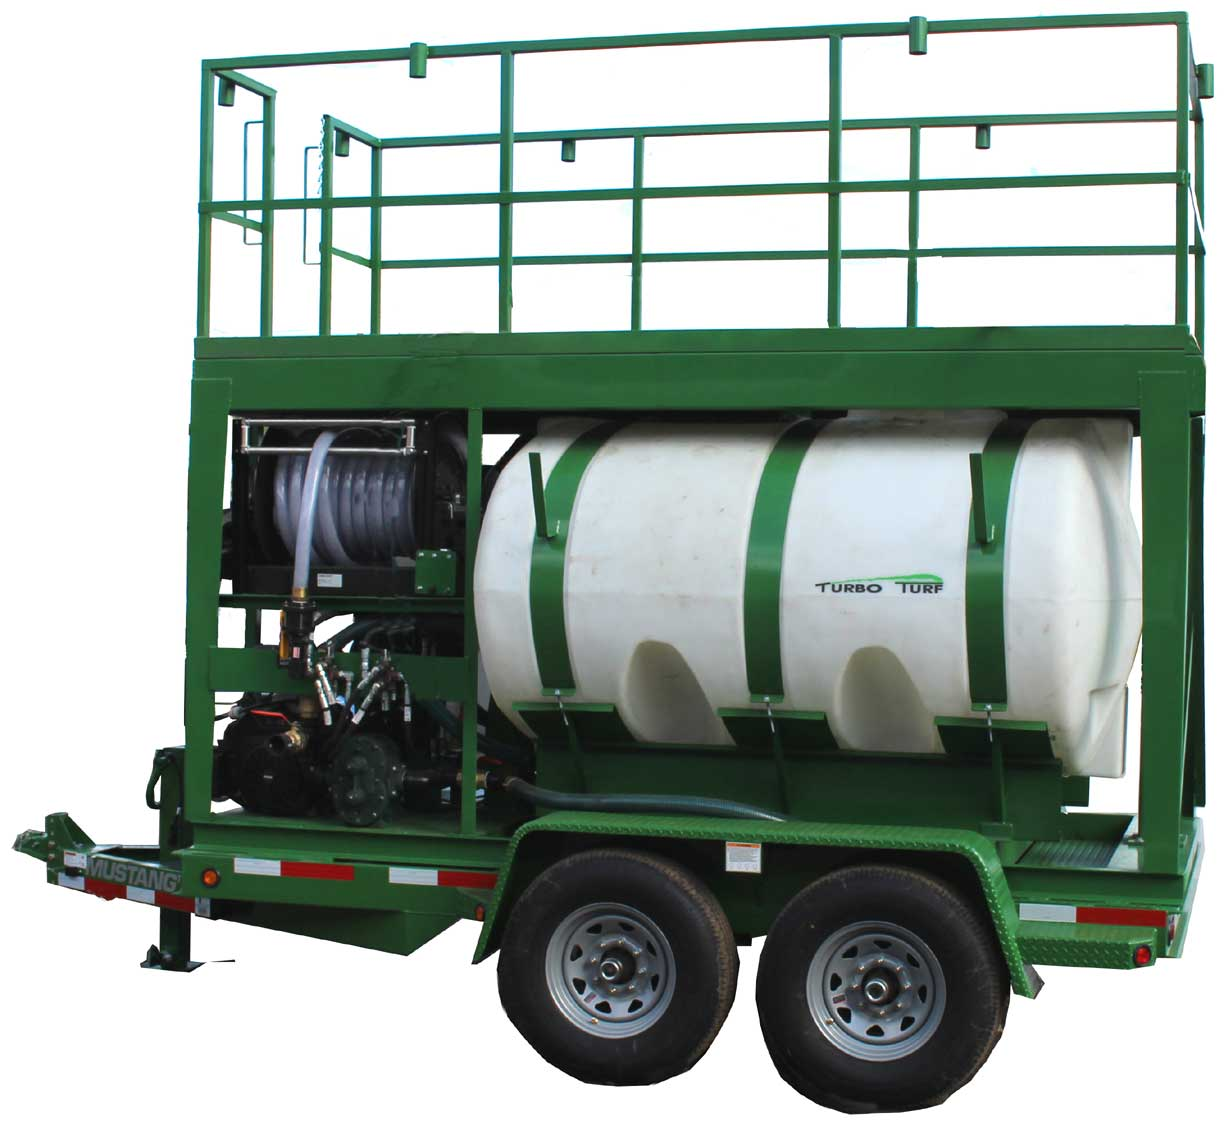 Turbo Turf HM-1000-HARV hydroseeder right side view